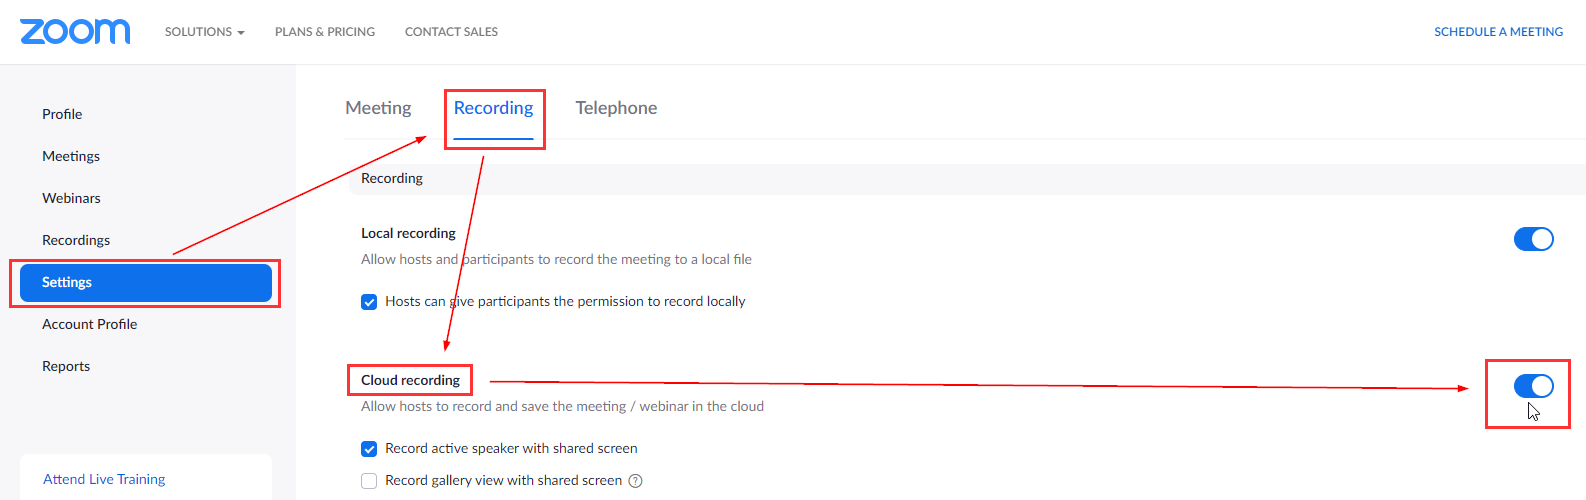 Cloud recording toggled on in settings